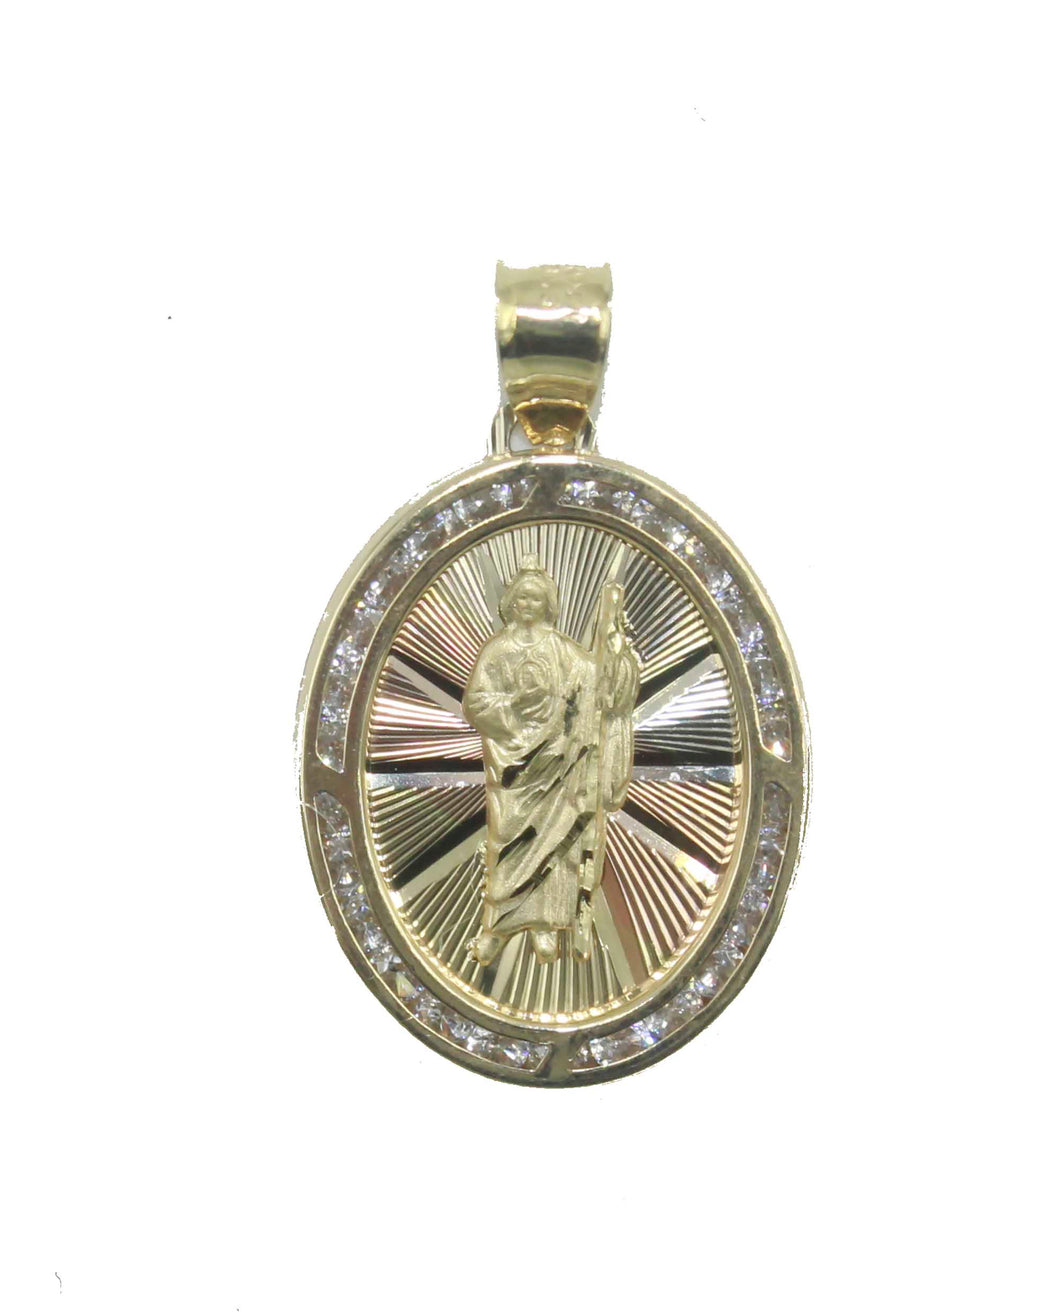 San Judas Tadeo 14k Yellow Gold Medal - St. Jude Thaddeus 14k Yellow Gold Medal